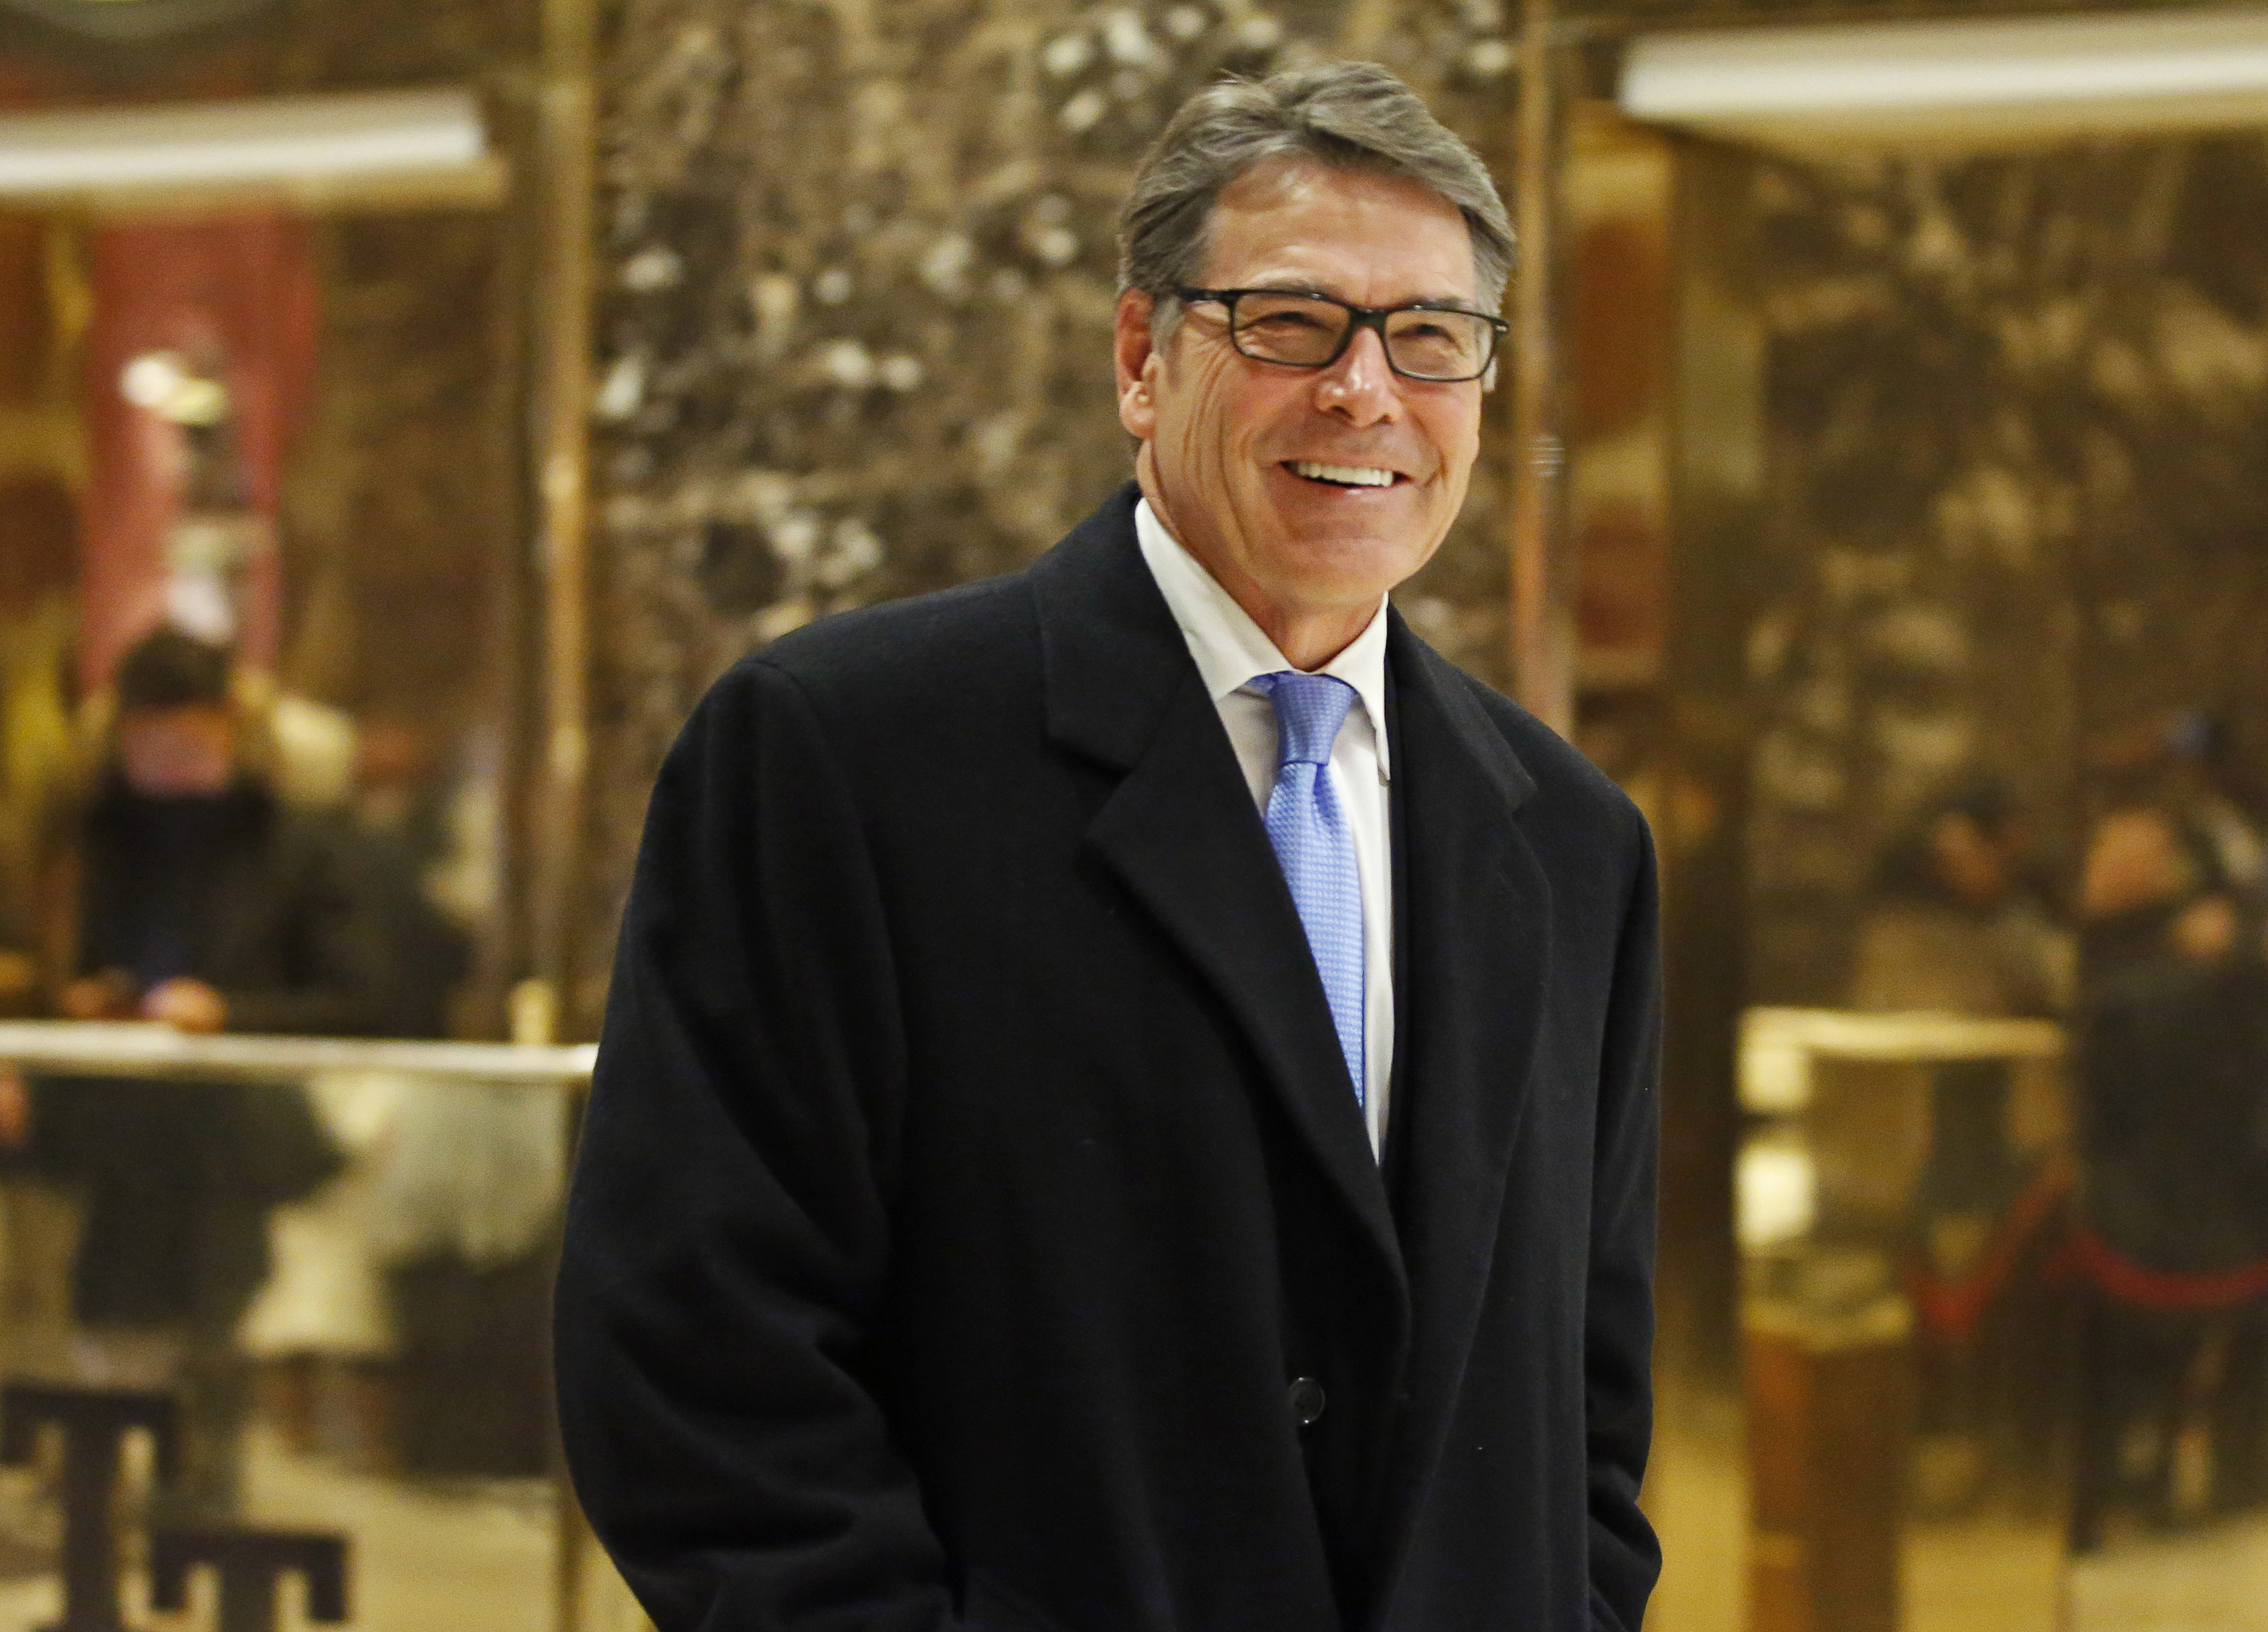 """Trump Energy Secretary FILE - In this Dec. 12, 2016, file photo, former Texas Gov. Rick Perry smiles as he leaves Trump Tower in New York. Perry was for """"all of the above"""" on energy production before President Barack Obama embraced the strategy. Years before the Democratic president endorsed all types of energy production _ from oil and gas to renewable sources like wind and solar power _ Perry was putting the policy into practice in Texas. (AP Photo/Kathy Willens, File)"""